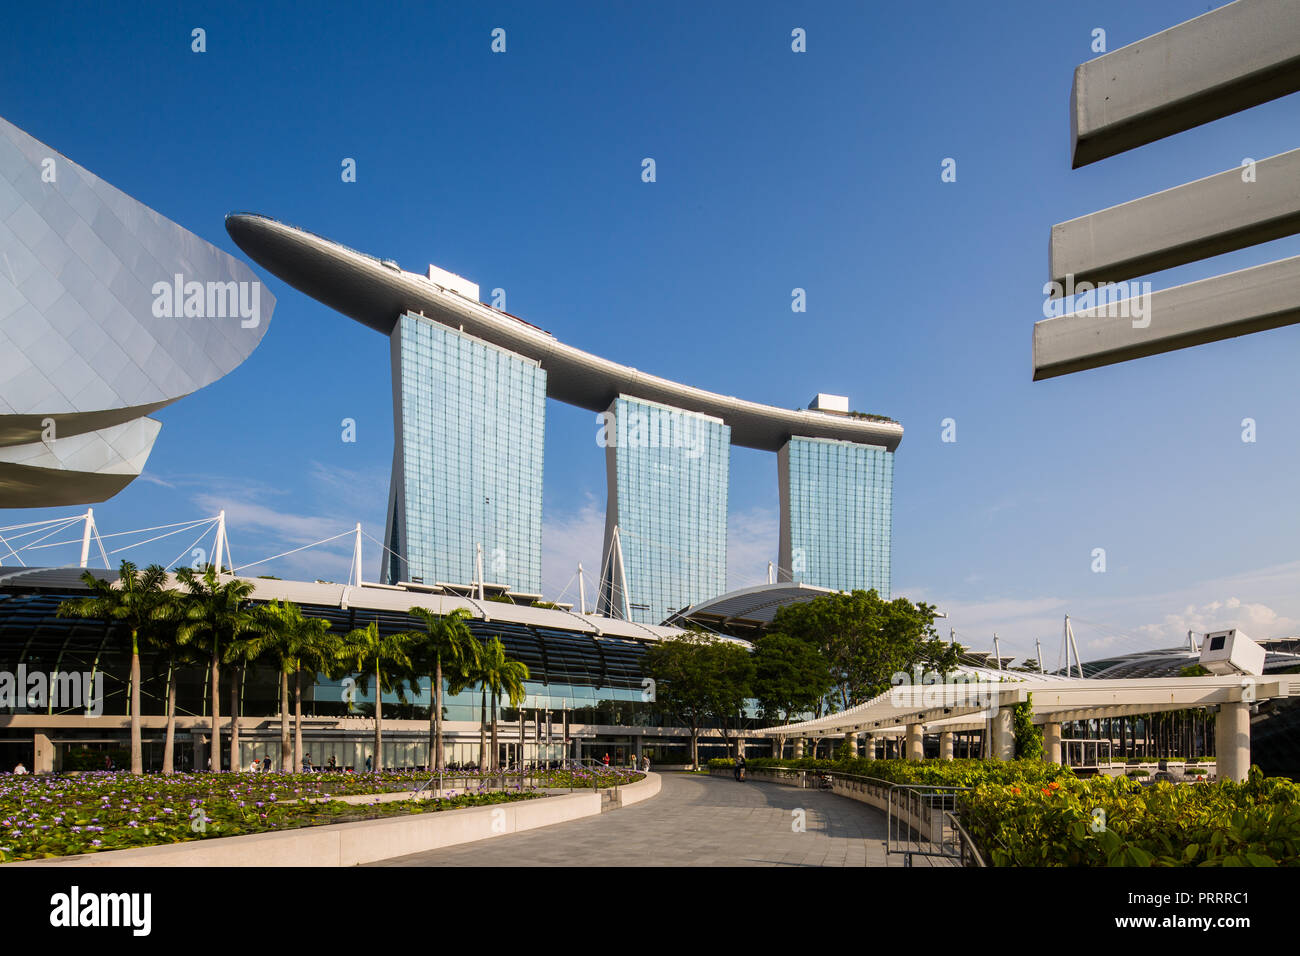 Architecture photography of Marina Bay Sands in Singapore - Stock Image